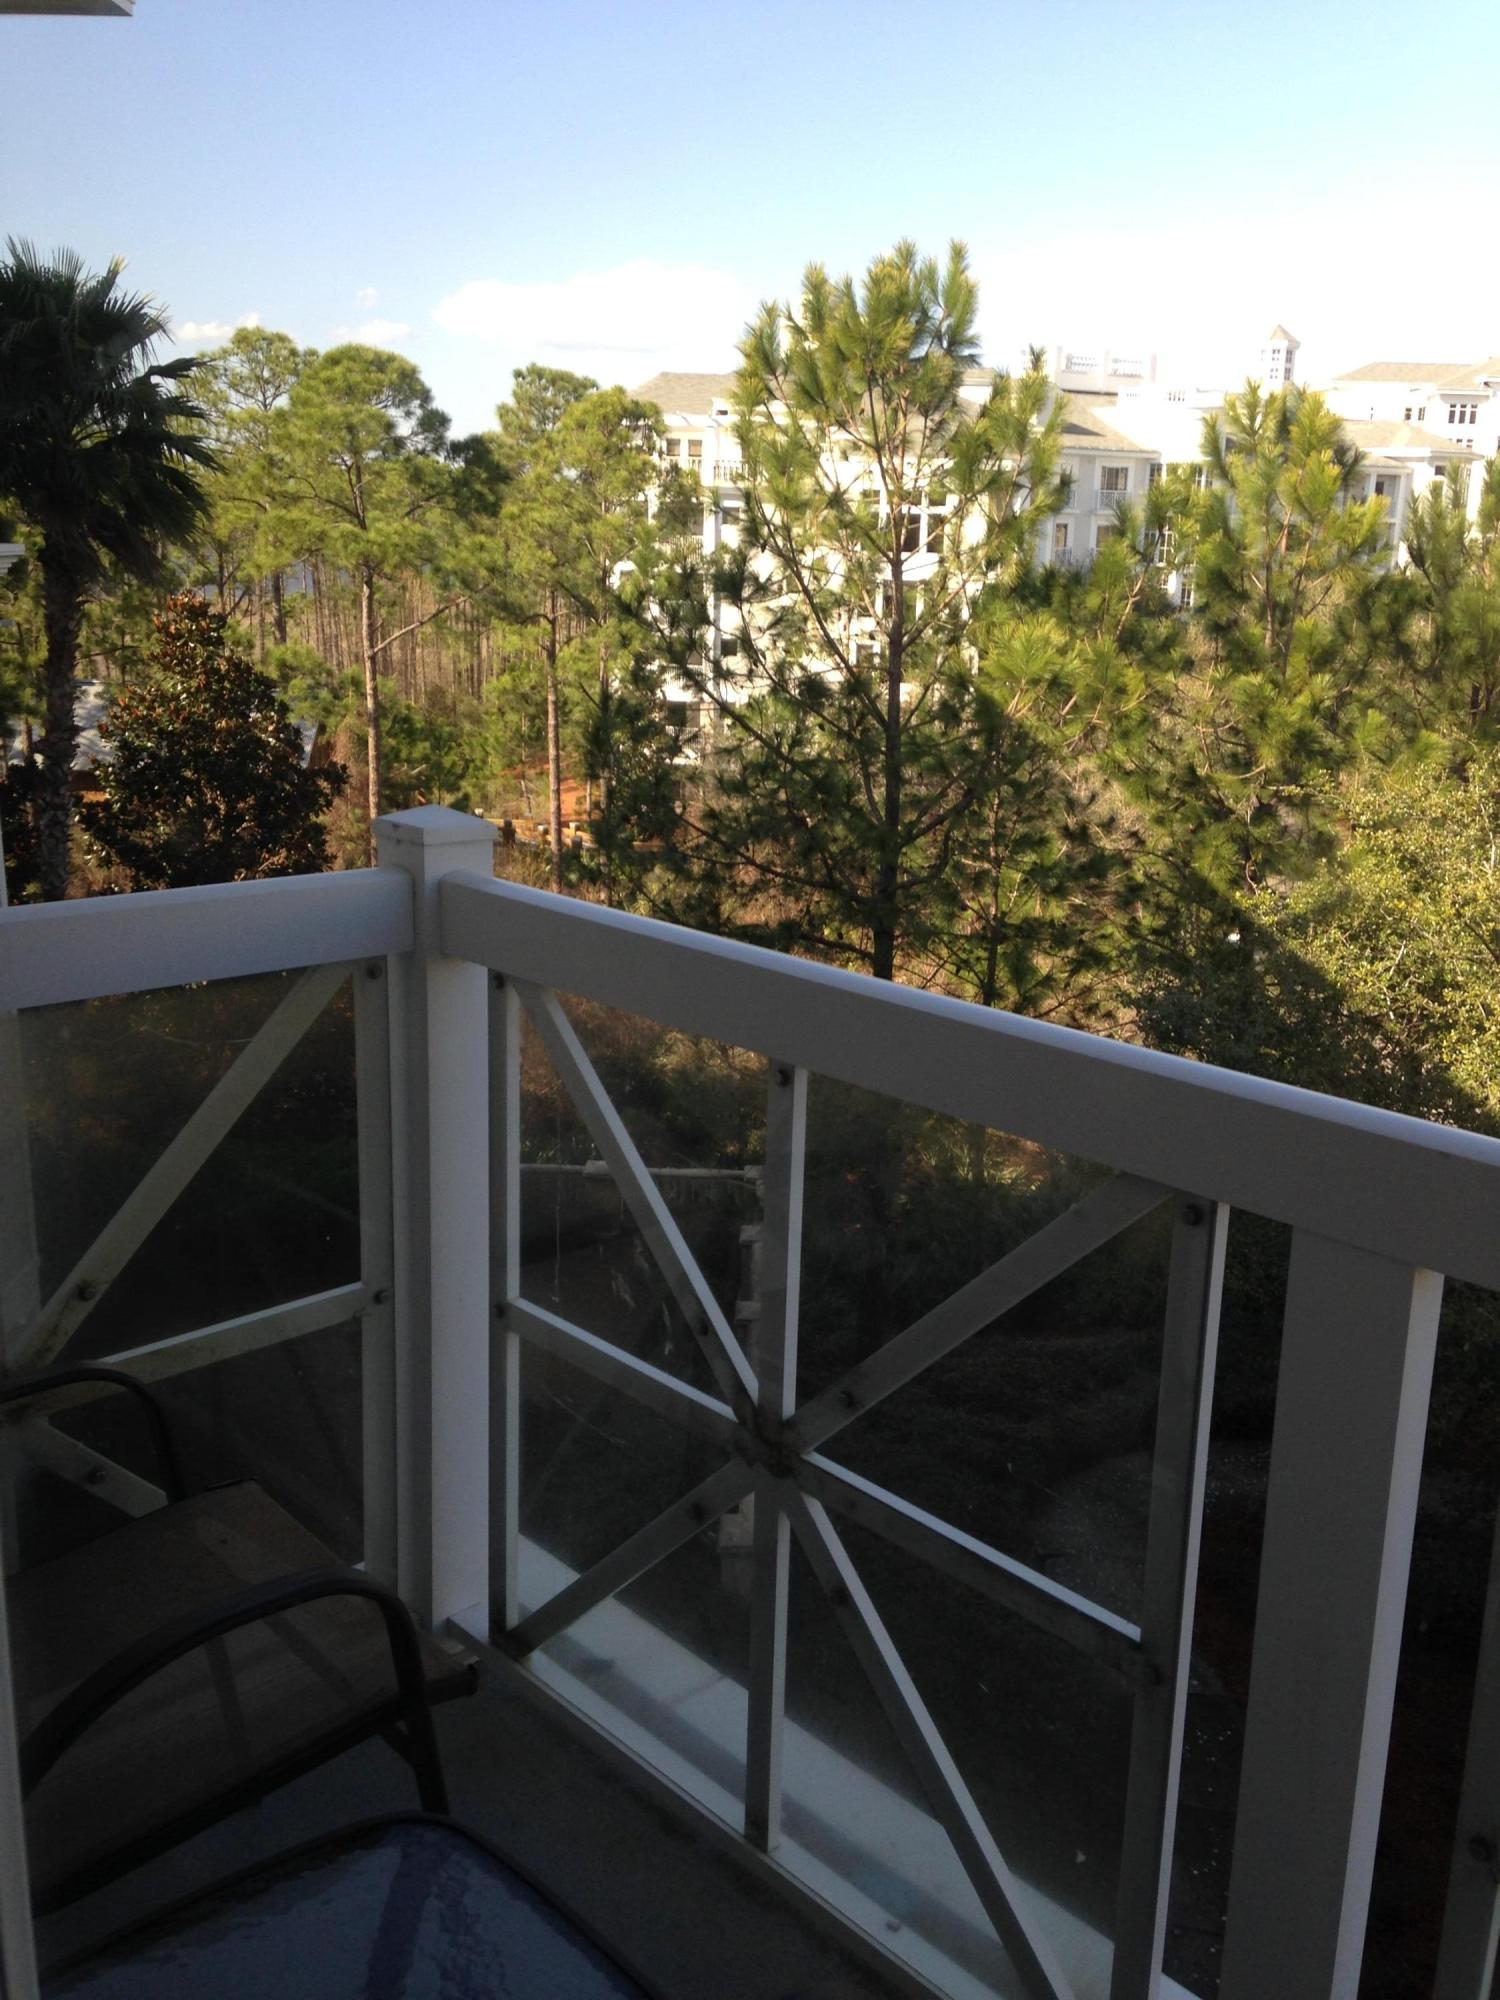 NEWLY PAINTED 5/7/18!Lasata studio unit is fully furnished and completely renovated!Tile plank flooring in studio, NEW King Size bed/mattress/headboard, TV Console, sofa bed,lamp and accessories.Lasata has resort-pool,fitness center and ACCESS TO PRIVATE SOLTICE CLUB FOR PRIVATE PARTIES! Sandestin Golf and Beach Resort is resort living at its best! Amenities include Beach access,championship golf courses, pools,tennis, full service marina & The Village of Baytowne Wharf with shops, restaurants, events and entertainment! Sandestin is a 2400 acre resort with white sand beaches and more! HOA Fees include Lasata $201.10/monthly, SOA $362.00/quarterly, Baytowne Wharf Neighborhood $74.25/quarterly.Lasata has one unassigned space in covered gated garage.Buyer to verify all data and specifications